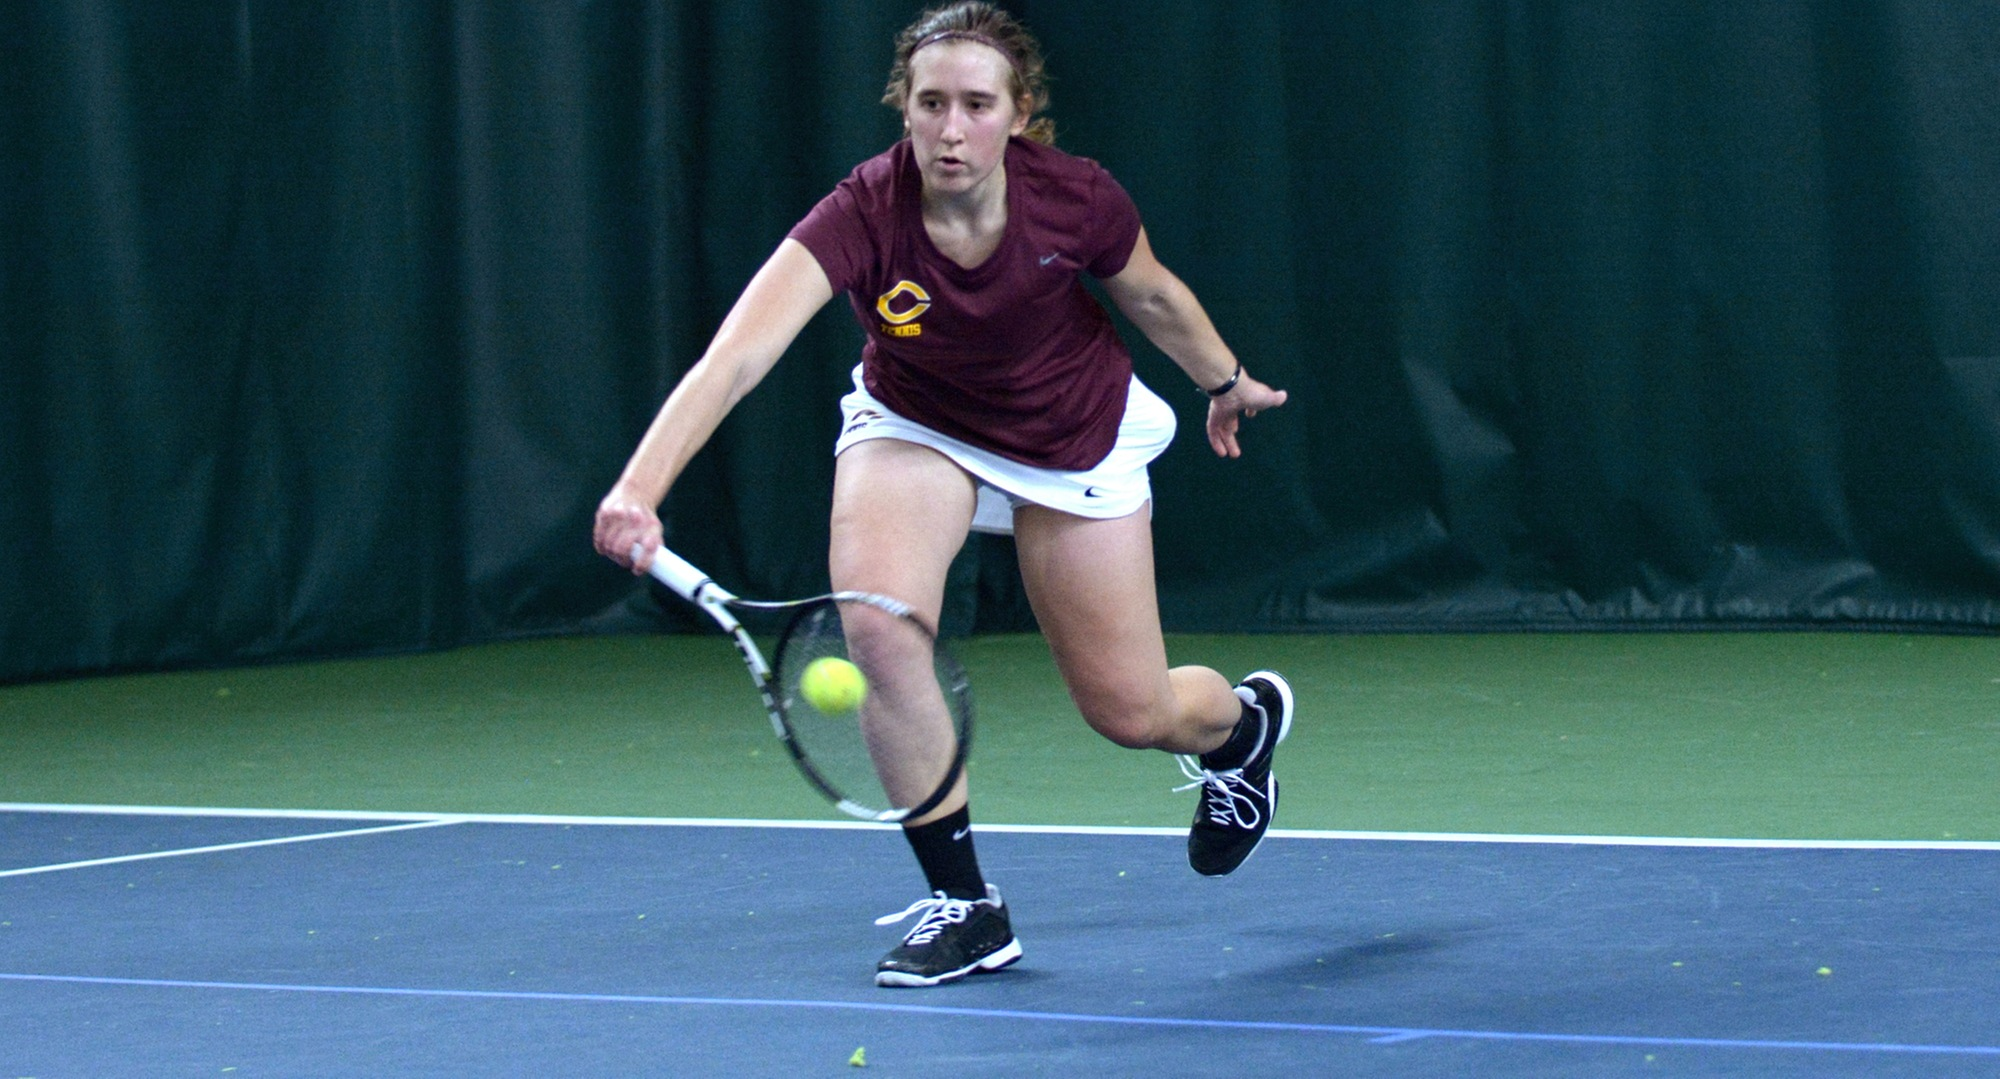 Sophomore Lisa Neumann goes down to return a shot during her 6-1, 6-0 win at No.2 singles in the Cobbers' season opener.